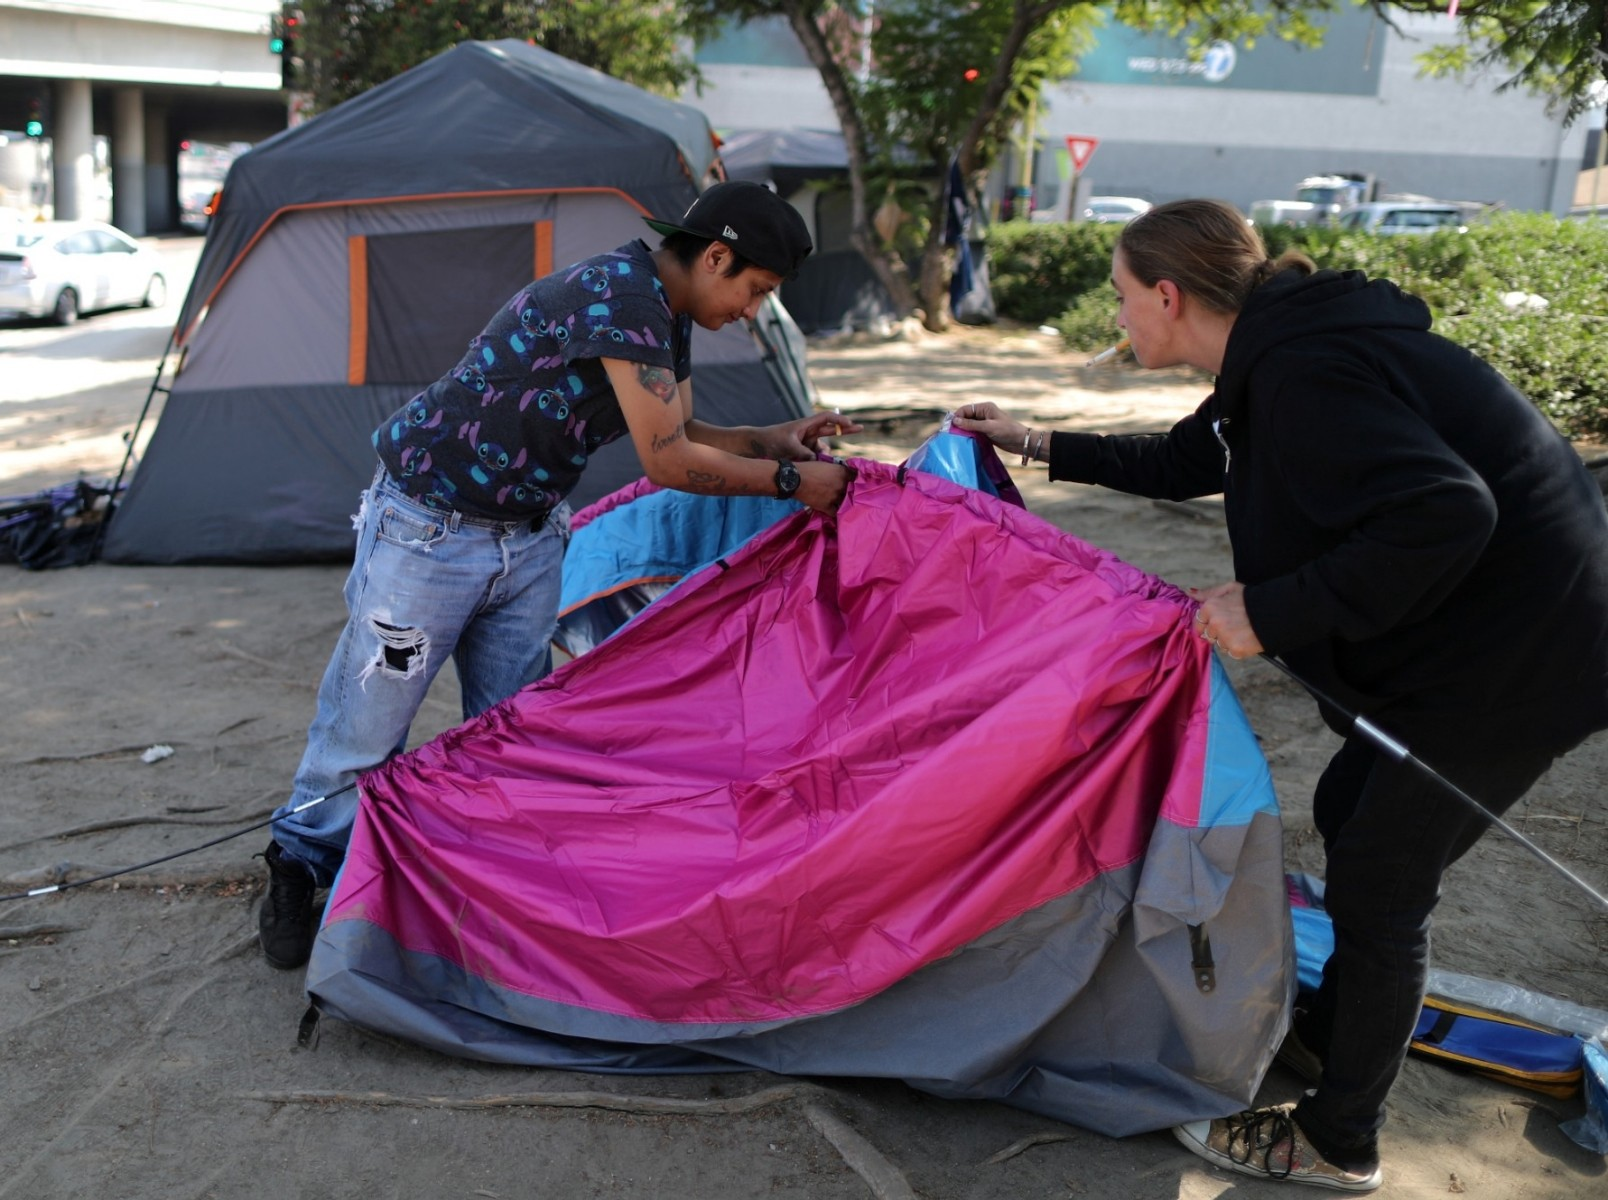 Christina Bojorquez and Kimberly Decoursey pitch a tent in Los Angeles, CA, October 14, 2019. Photo by Lucy Nicholson/Reuters